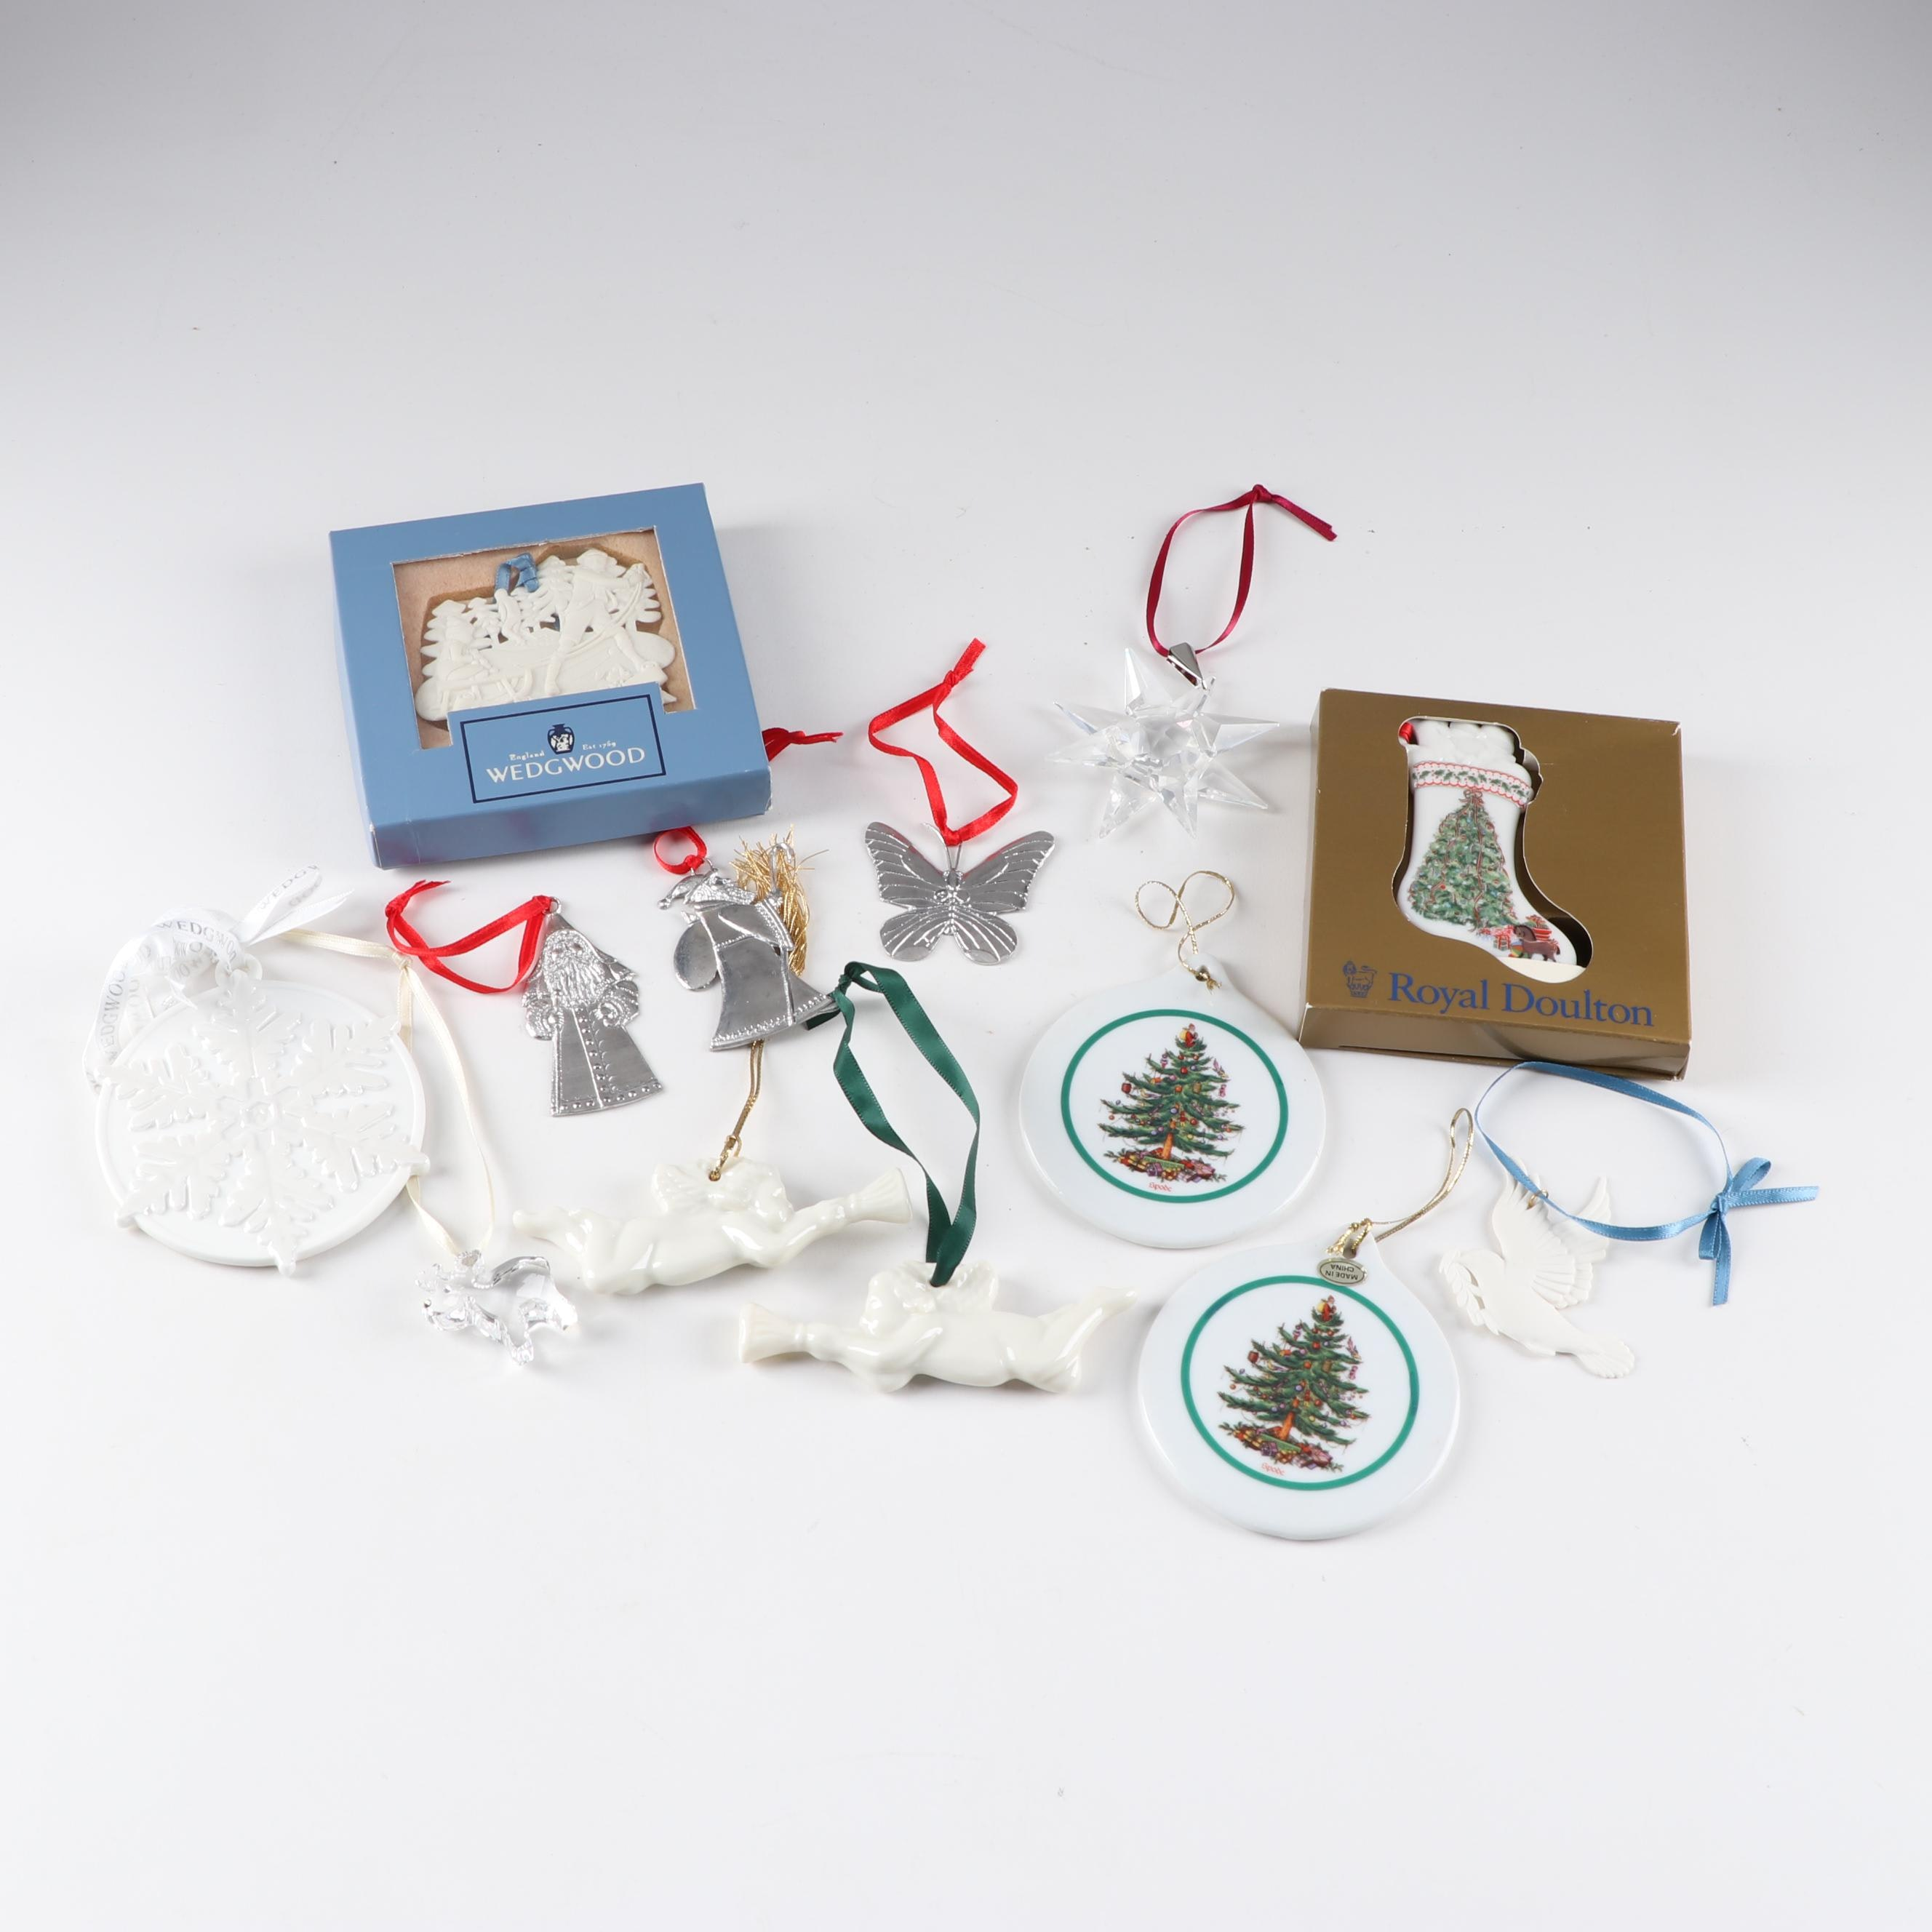 Christmas Ornaments Featuring Swarovski, Belleek, Wedgwood, Spode, Royal Doulton